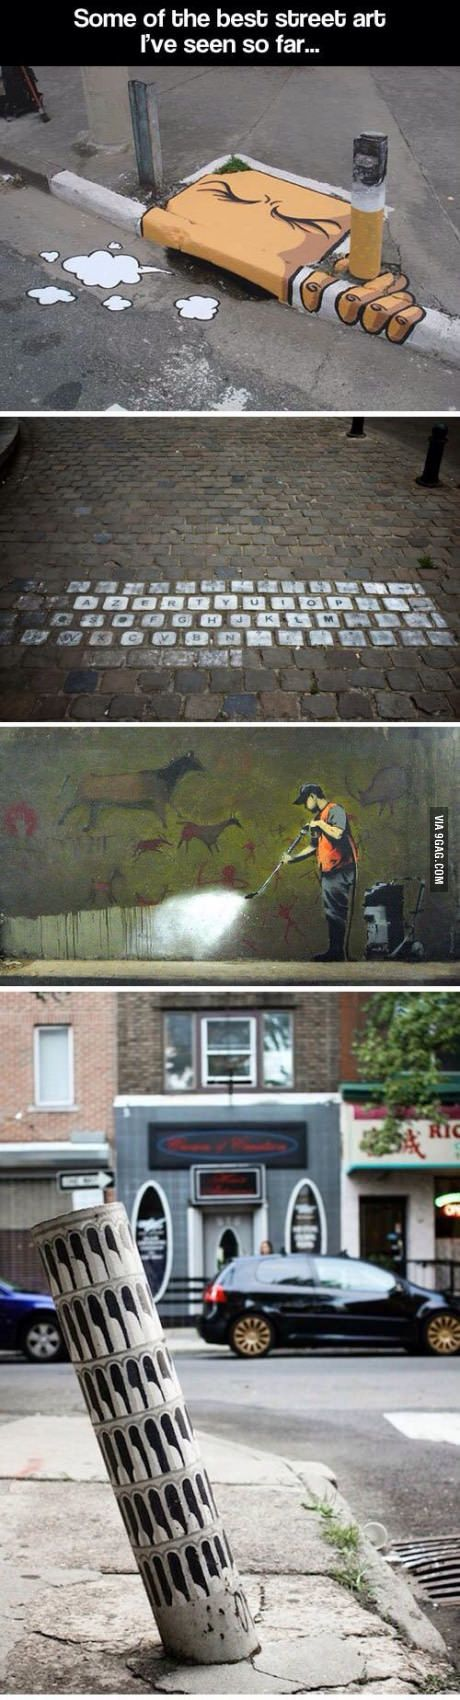 Street art is usually stupid but the one at the top shares a great message